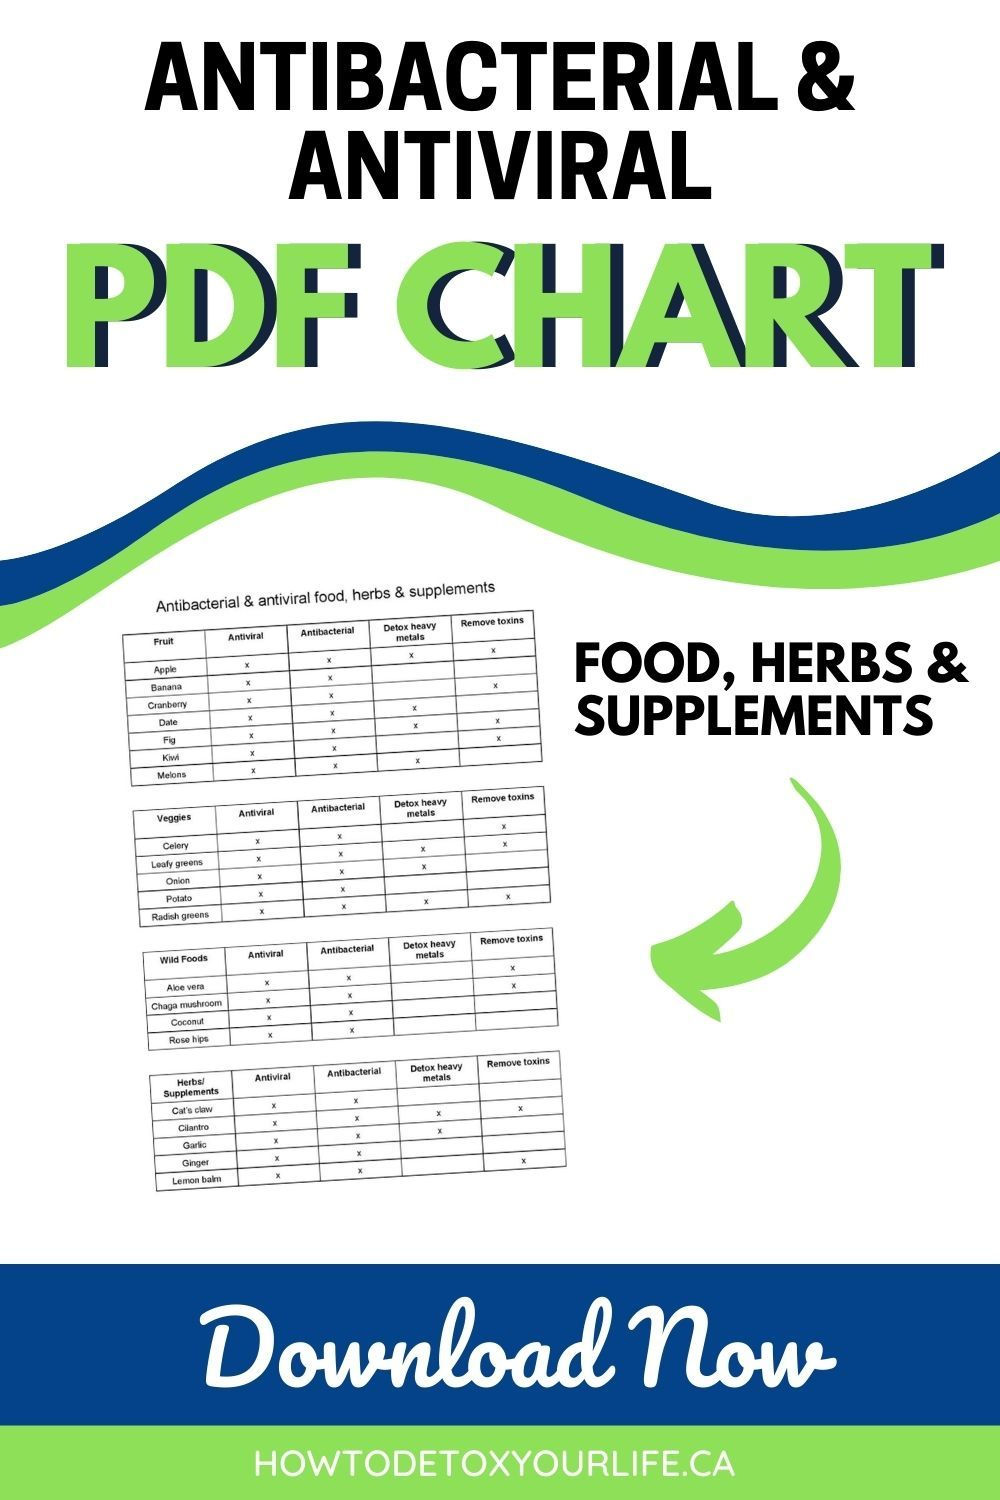 Antiviral and antibacterial food herbs and supplements in